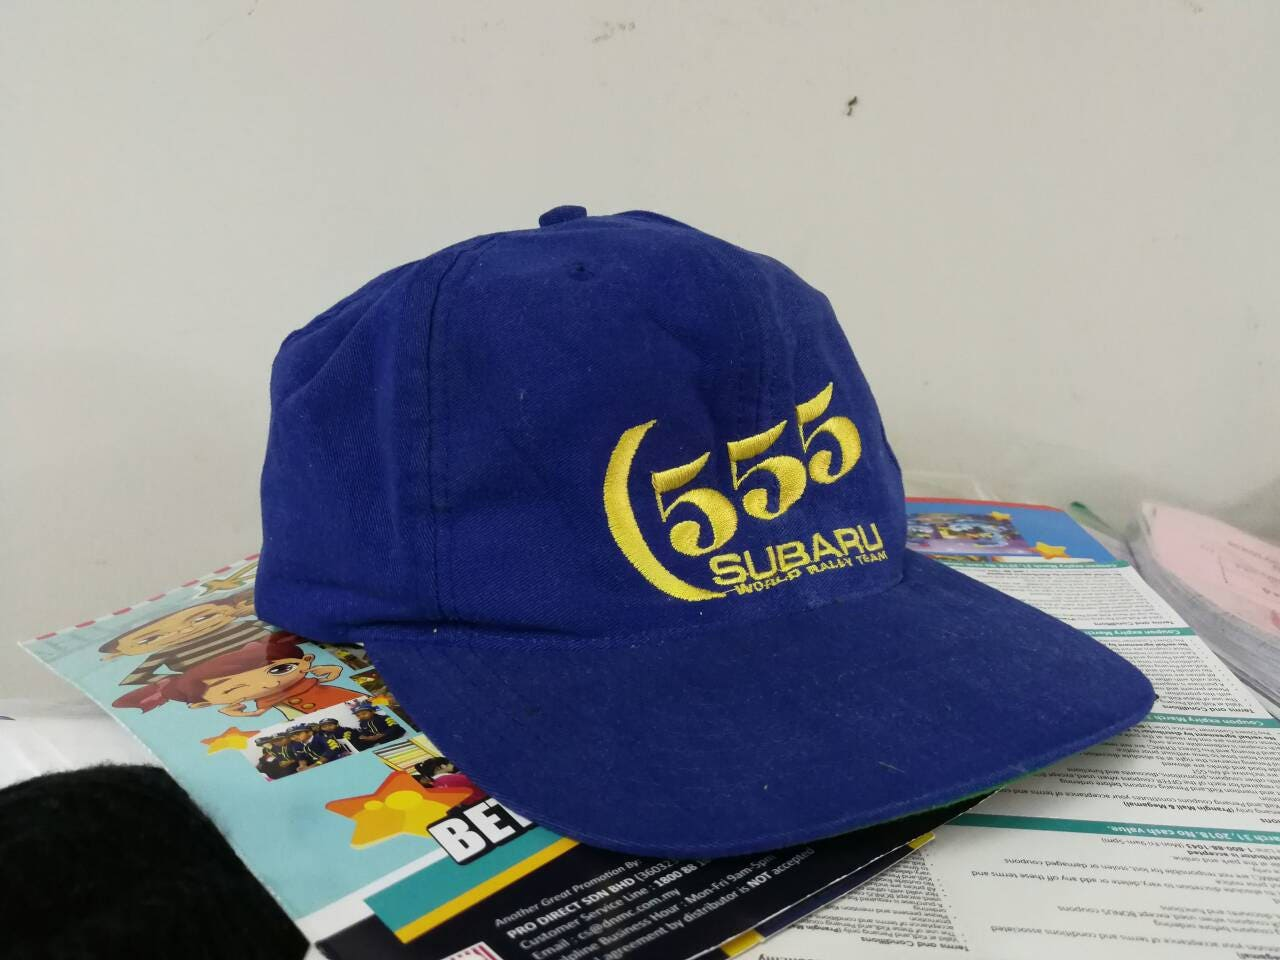 Vintage 80s subaru 555 world rally team cap free size ... 321faa728d7